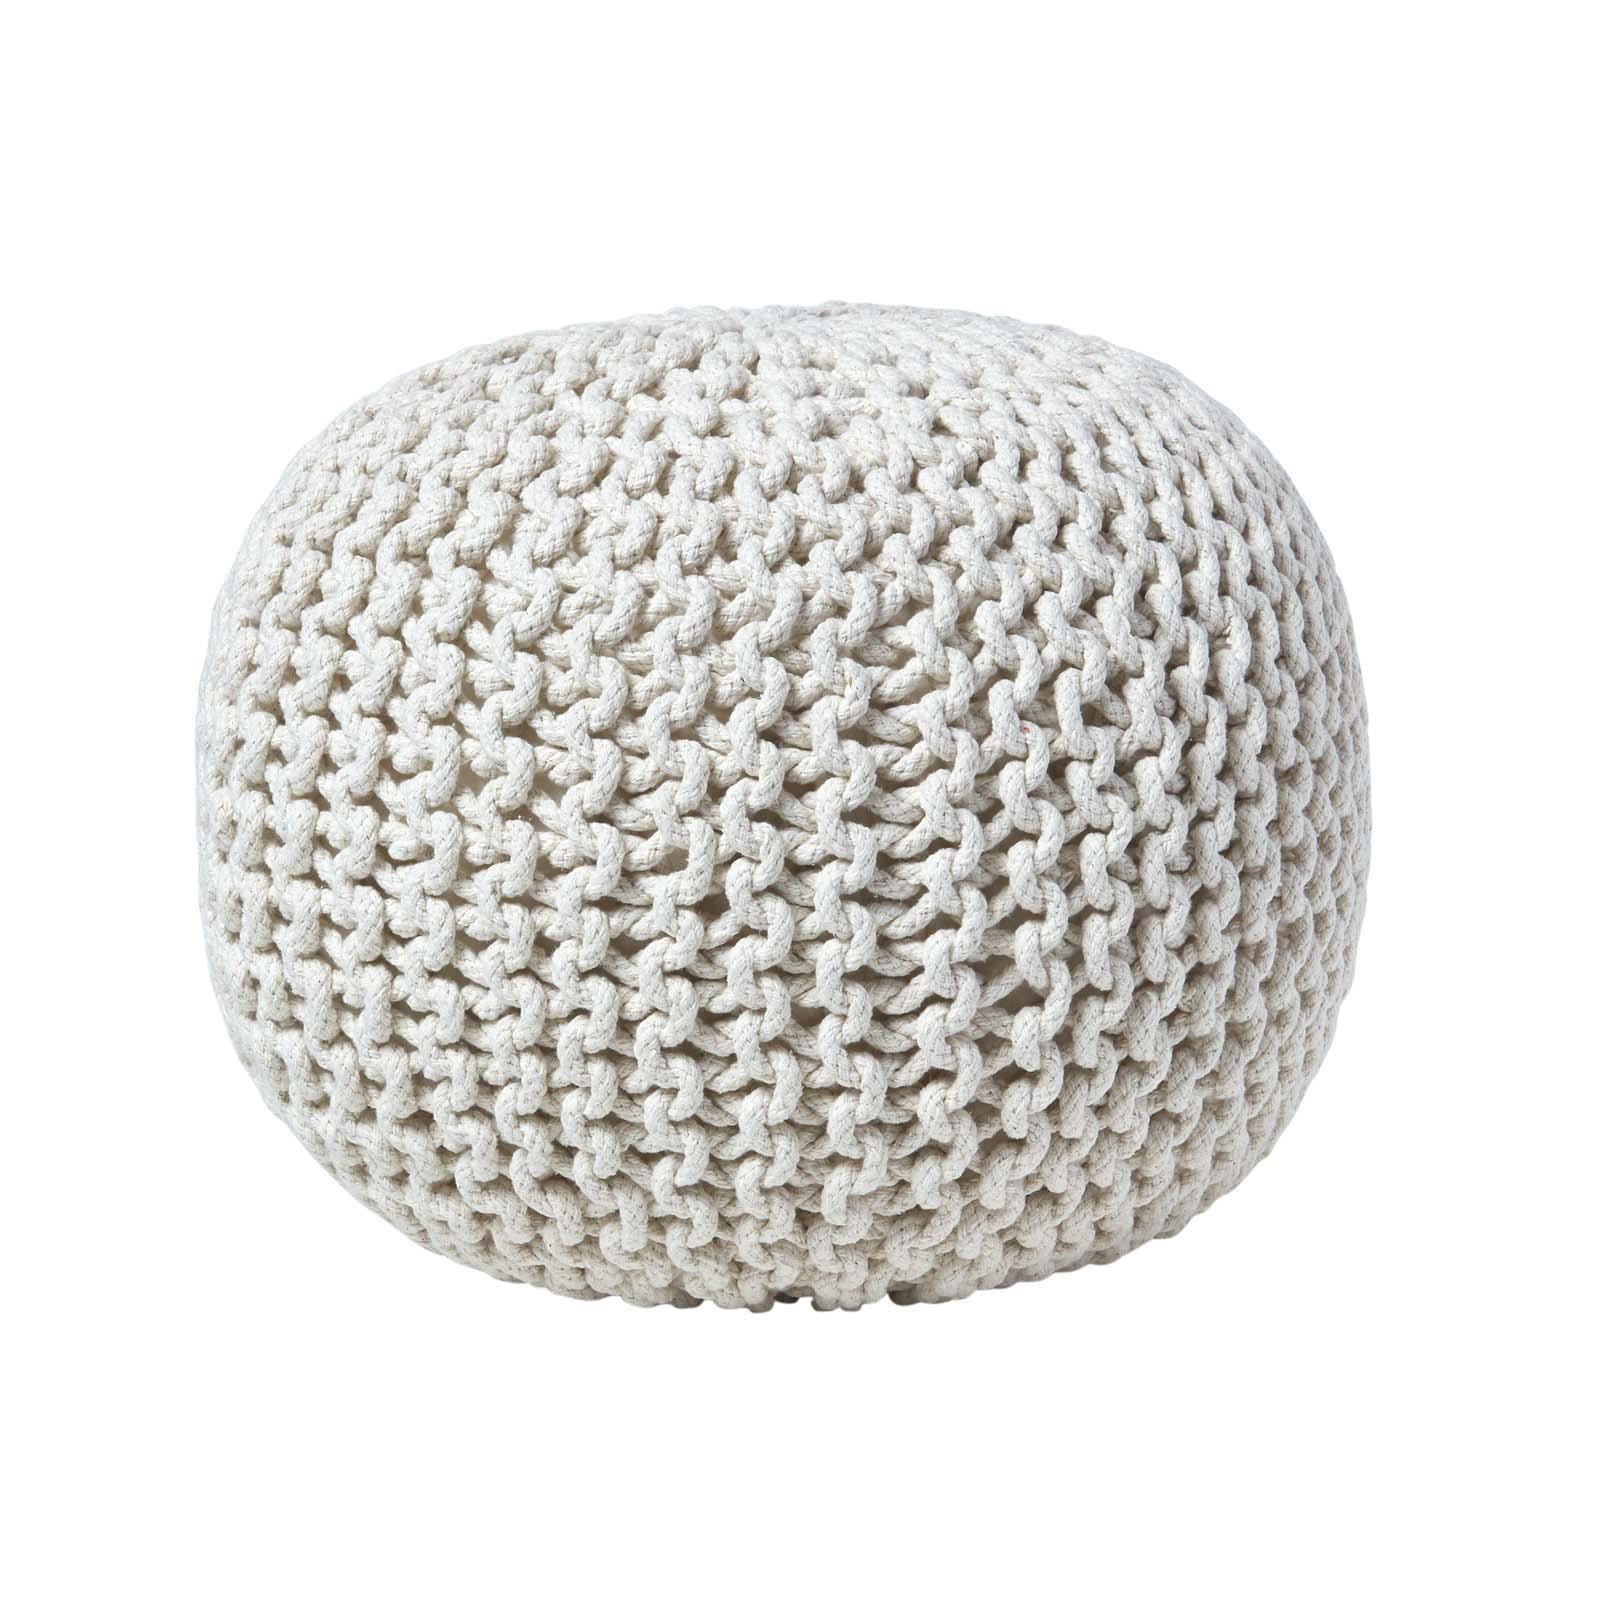 Hand-Knitted-100-Cotton-Pouffes-Round-Sphere-Or-Cube-Square-Chunky-Footstools thumbnail 92